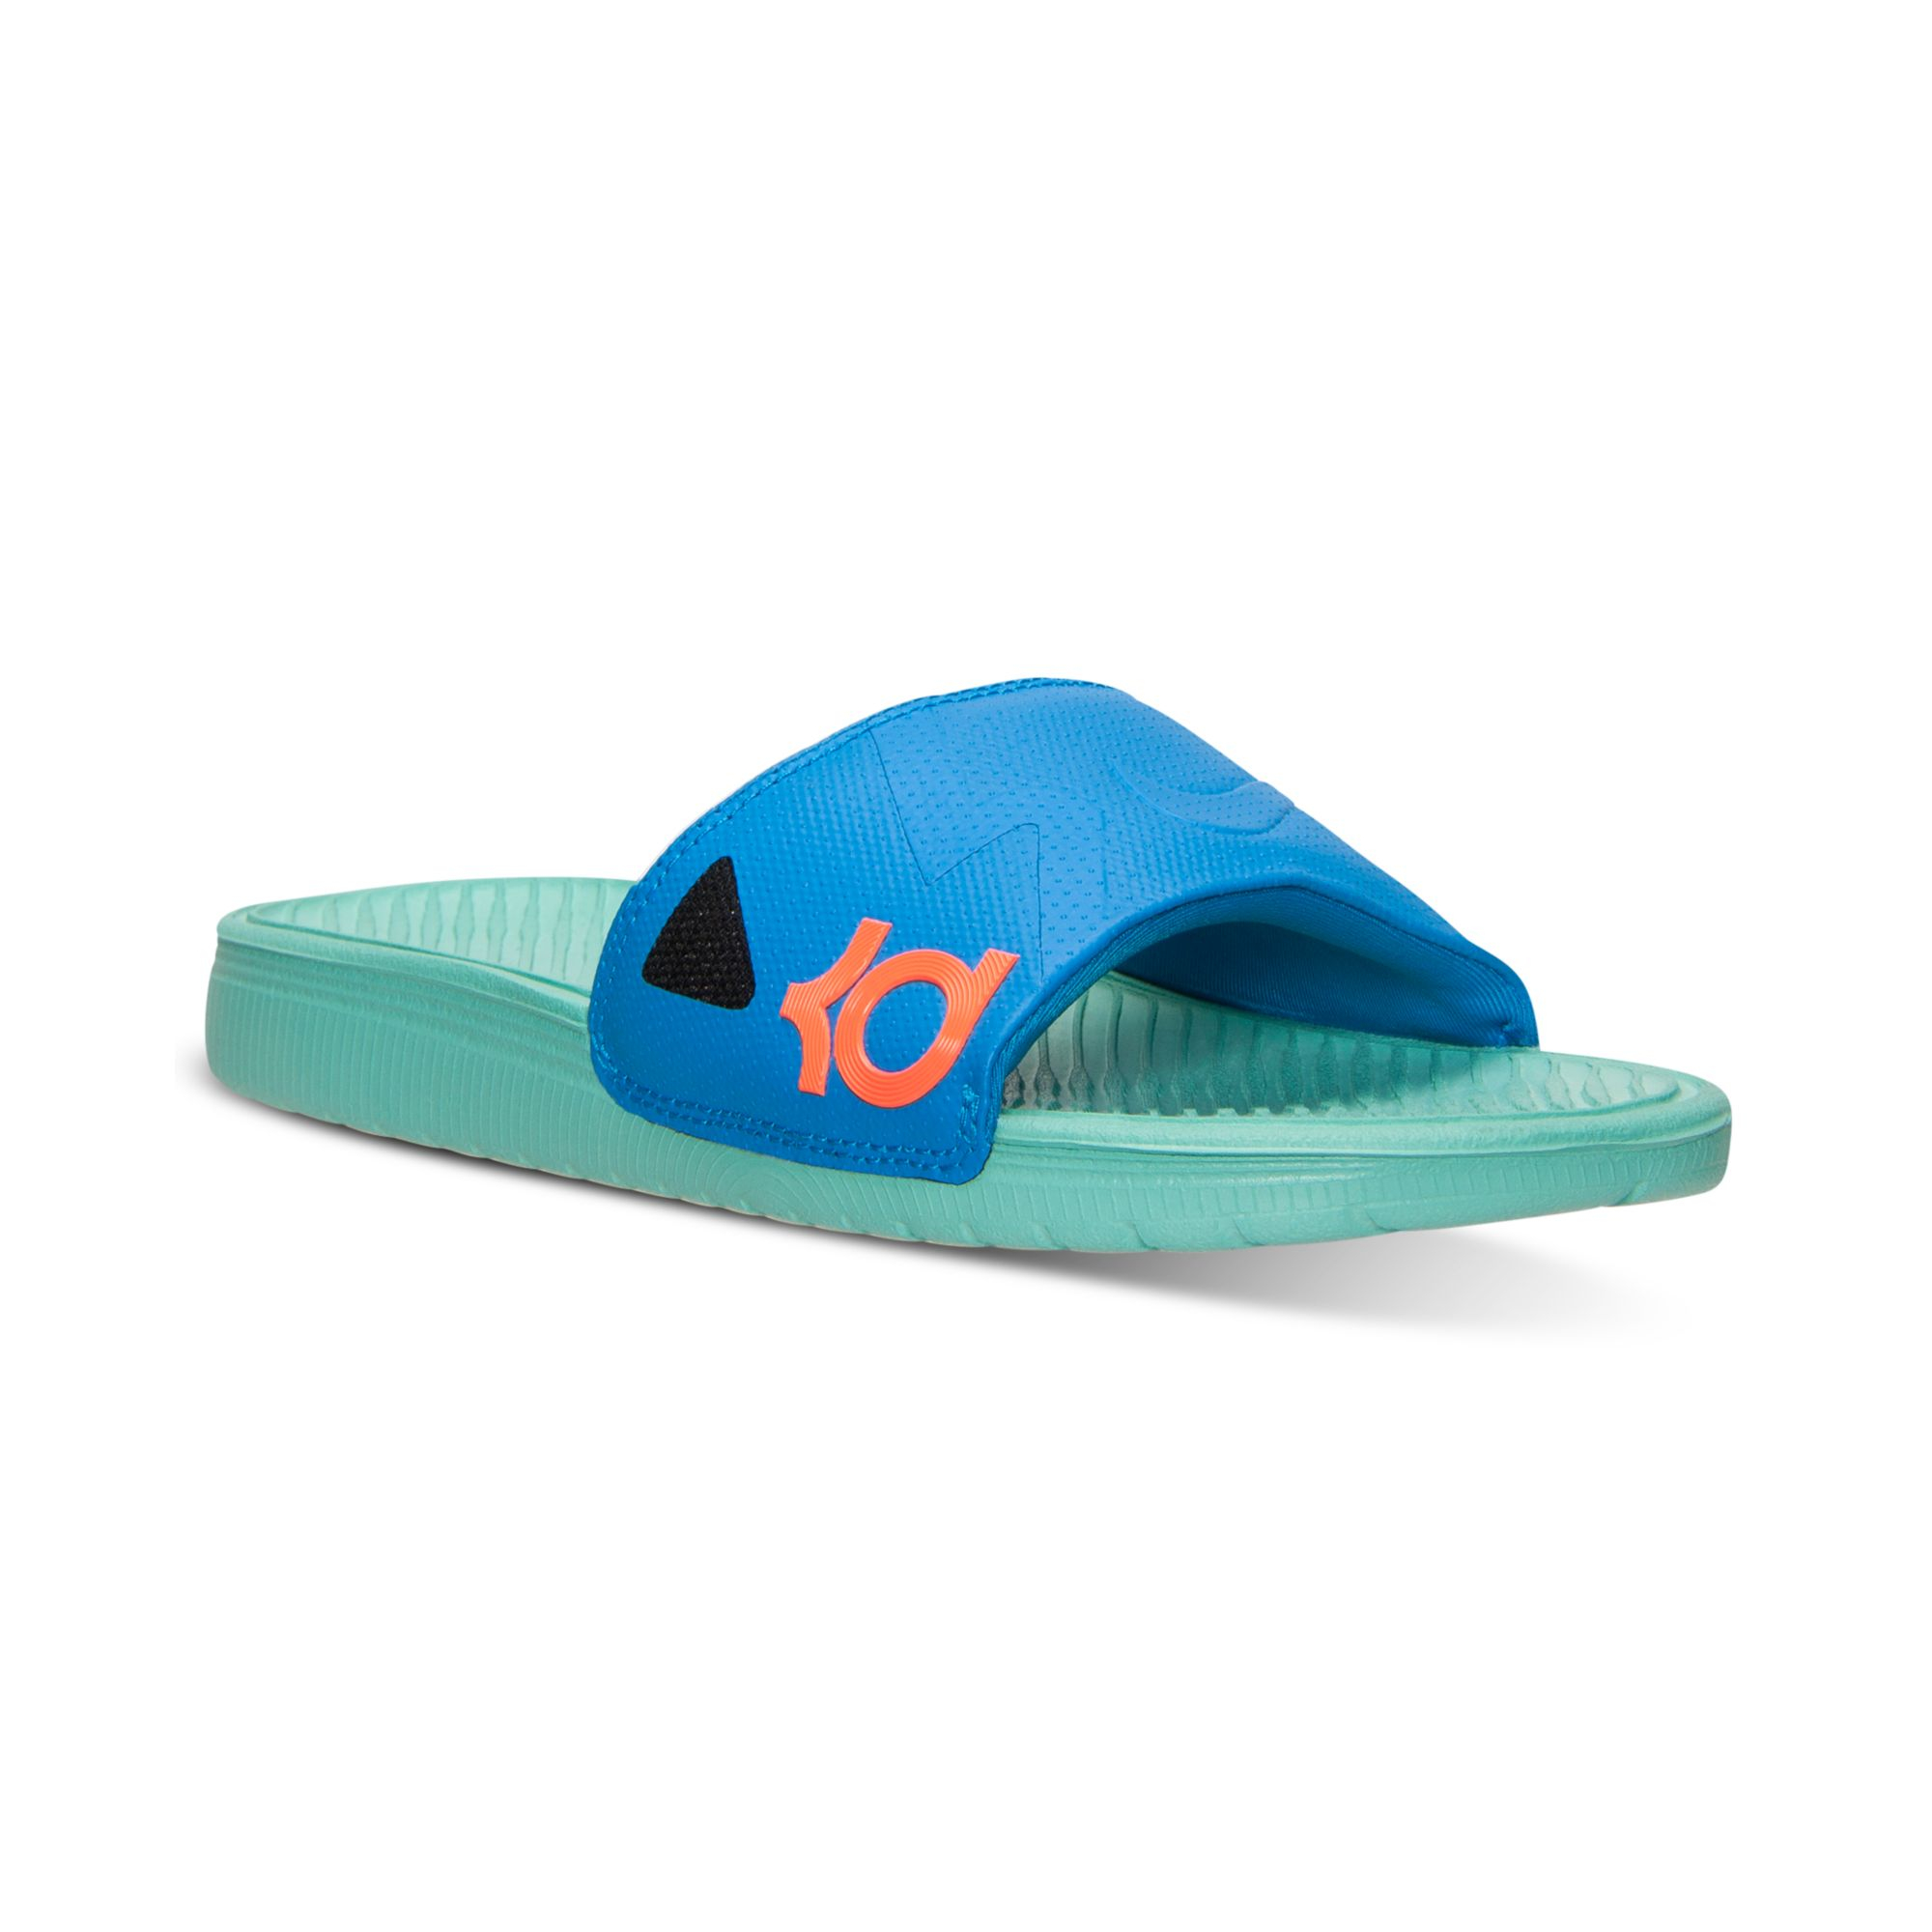 a8b79362a57f Lyst - Nike Mens Solarsoft Kd Slide Sandals From Finish Line in Blue ...